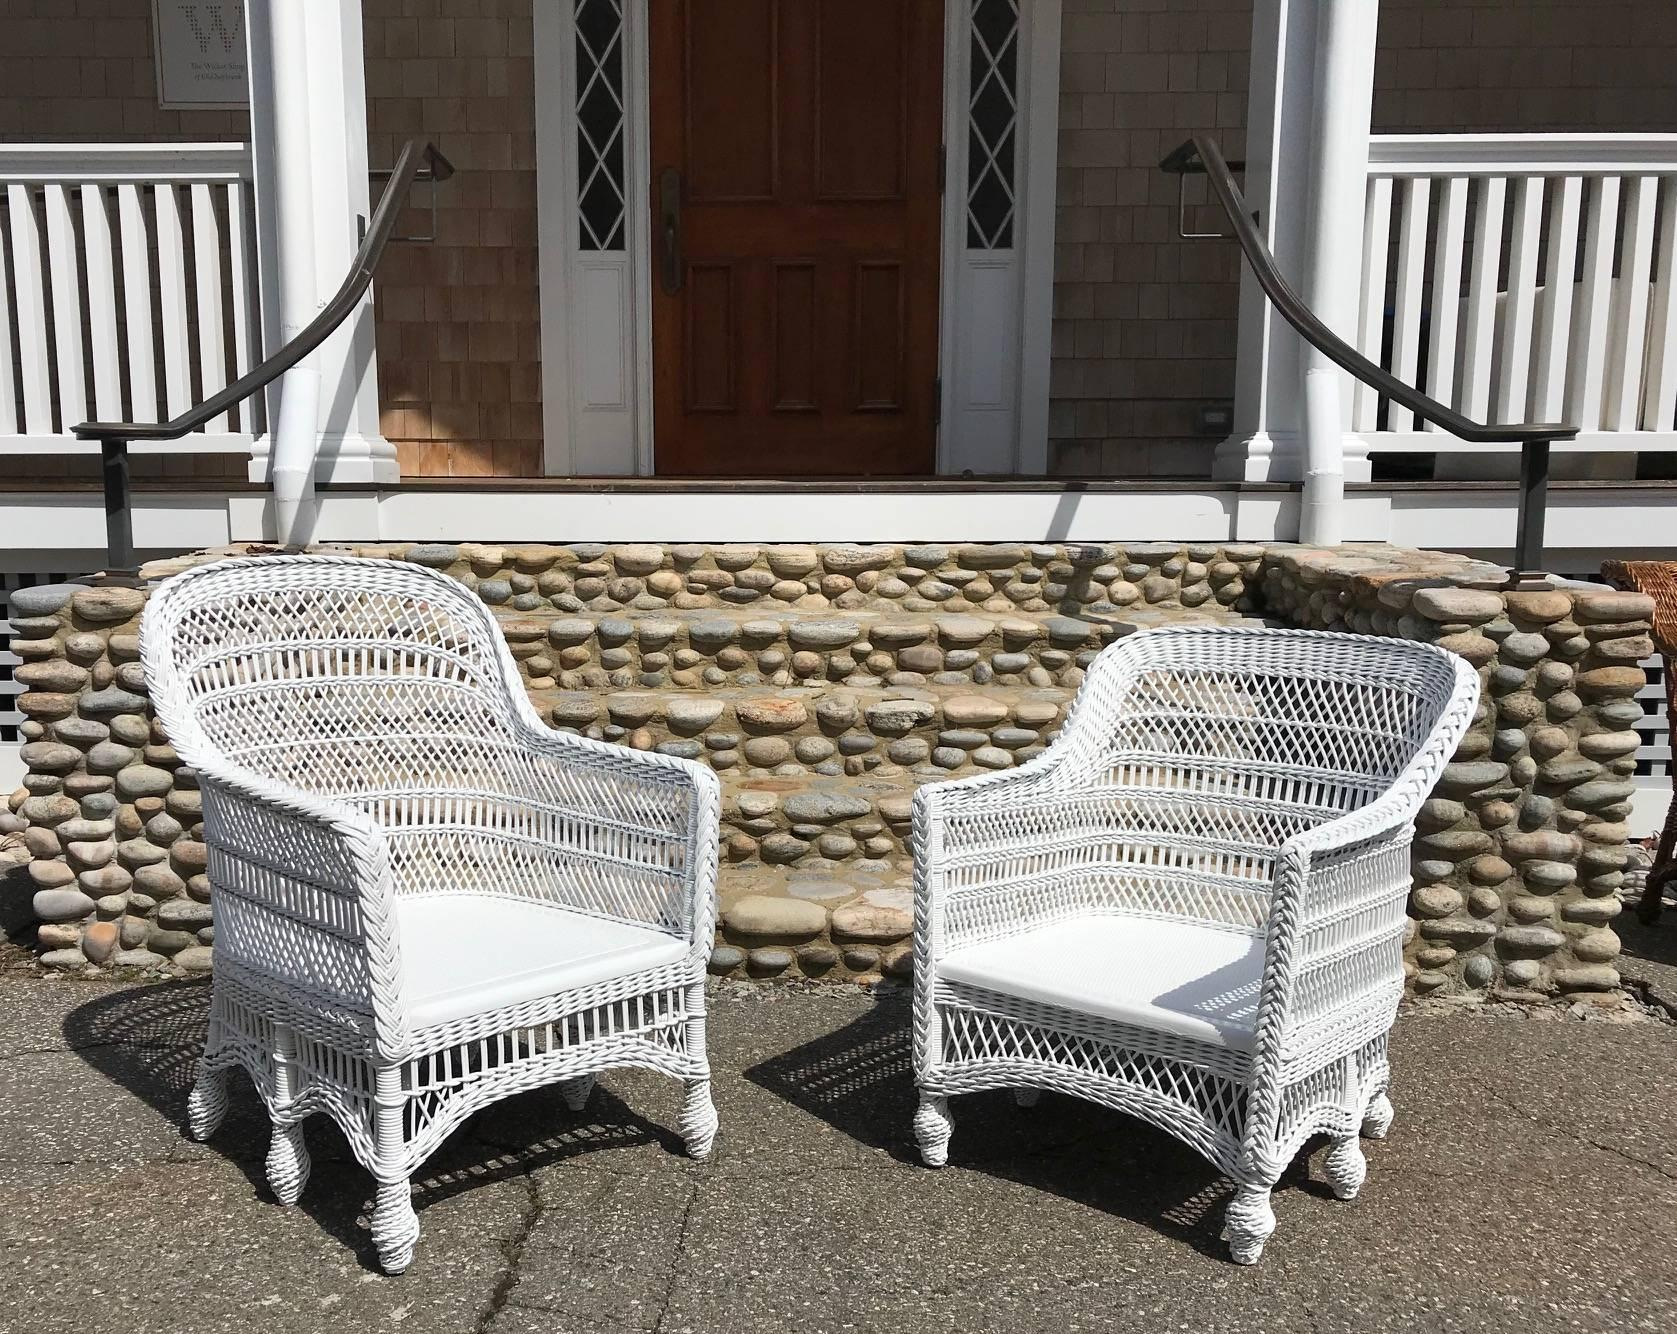 wicker chairs for sale ethan allen club chair slipcovers antique victorian six legged at 1stdibs american